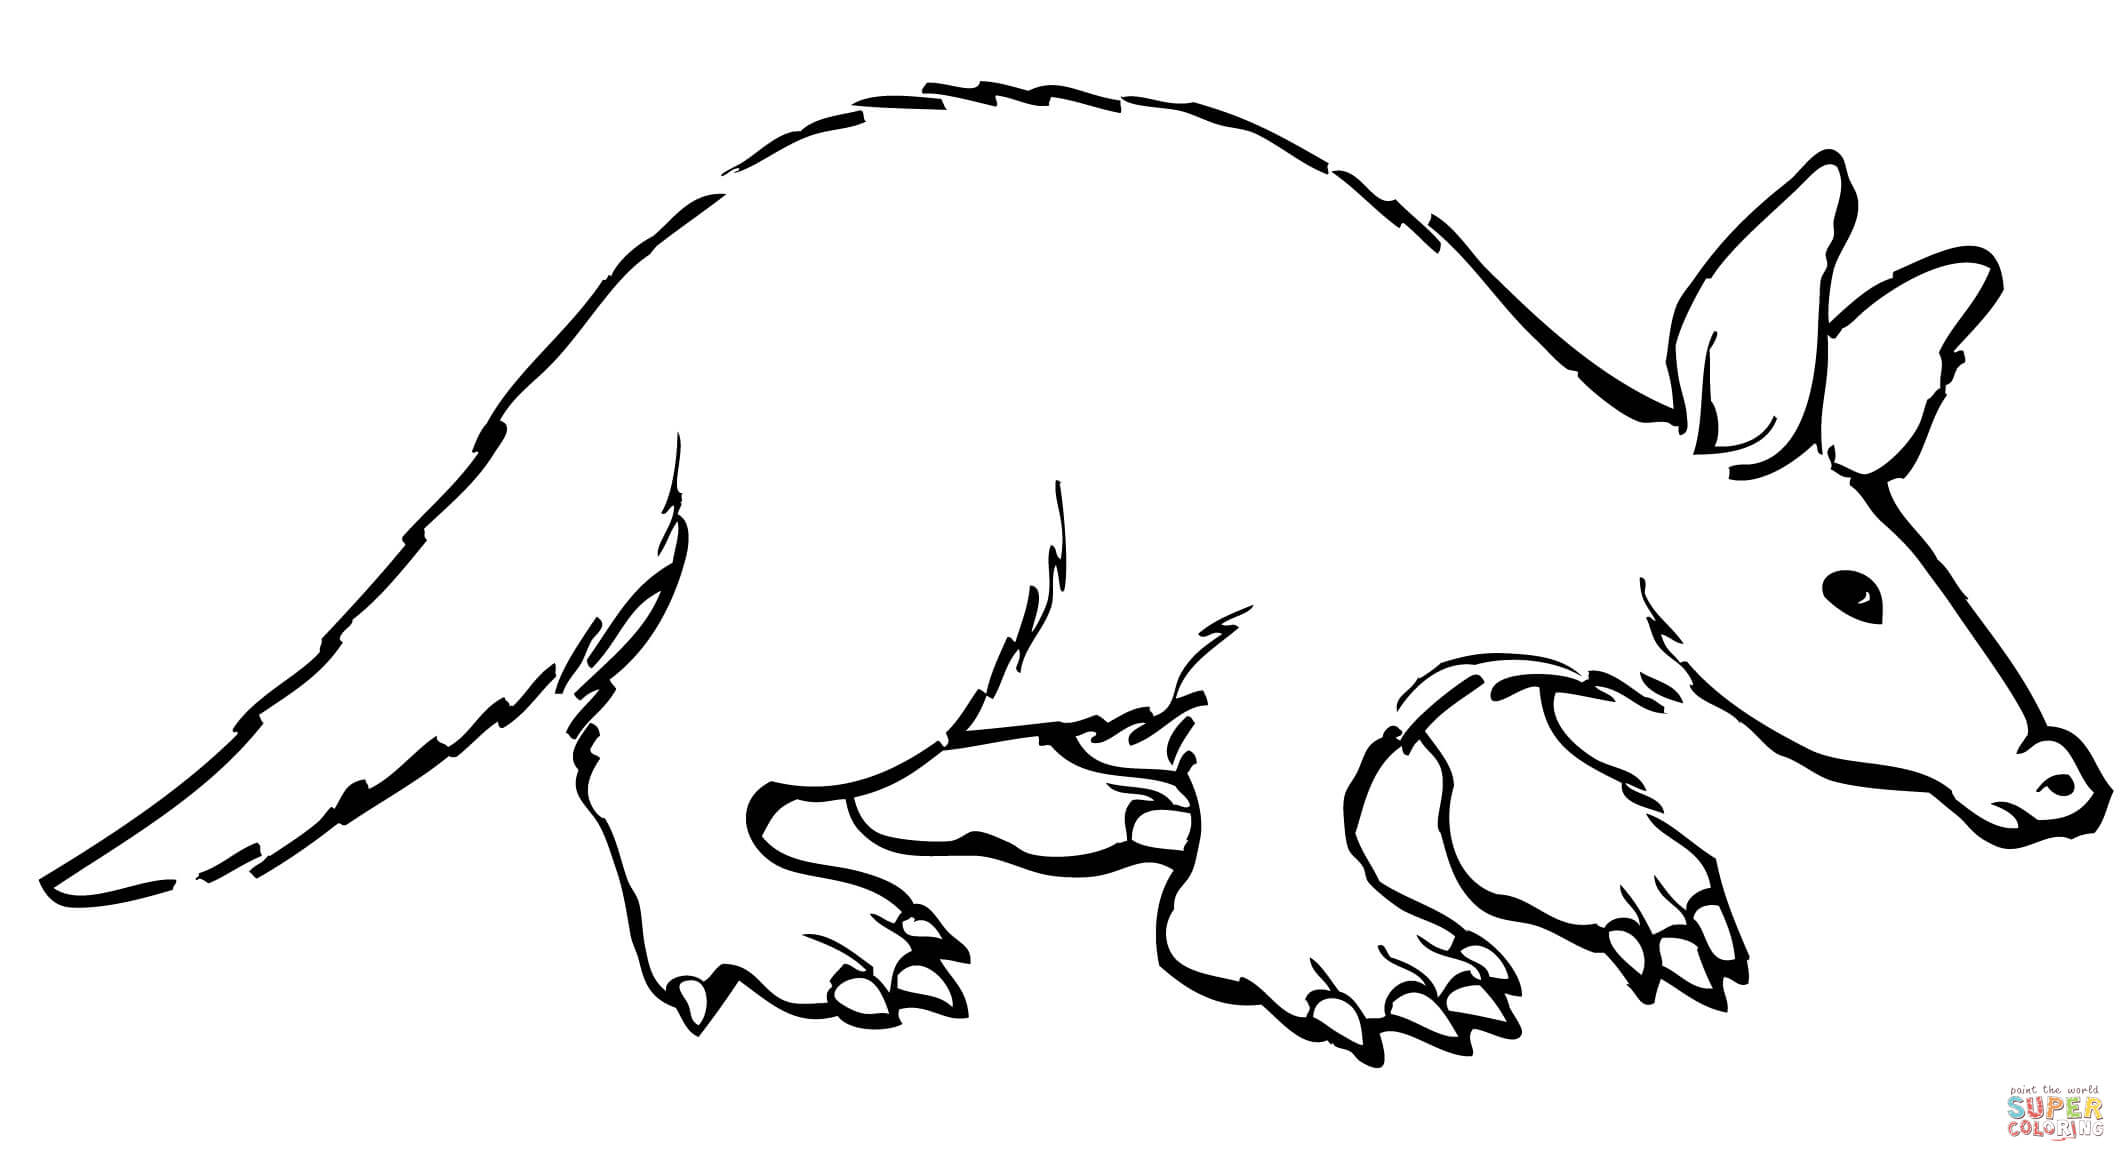 Ant Eater Worksheet